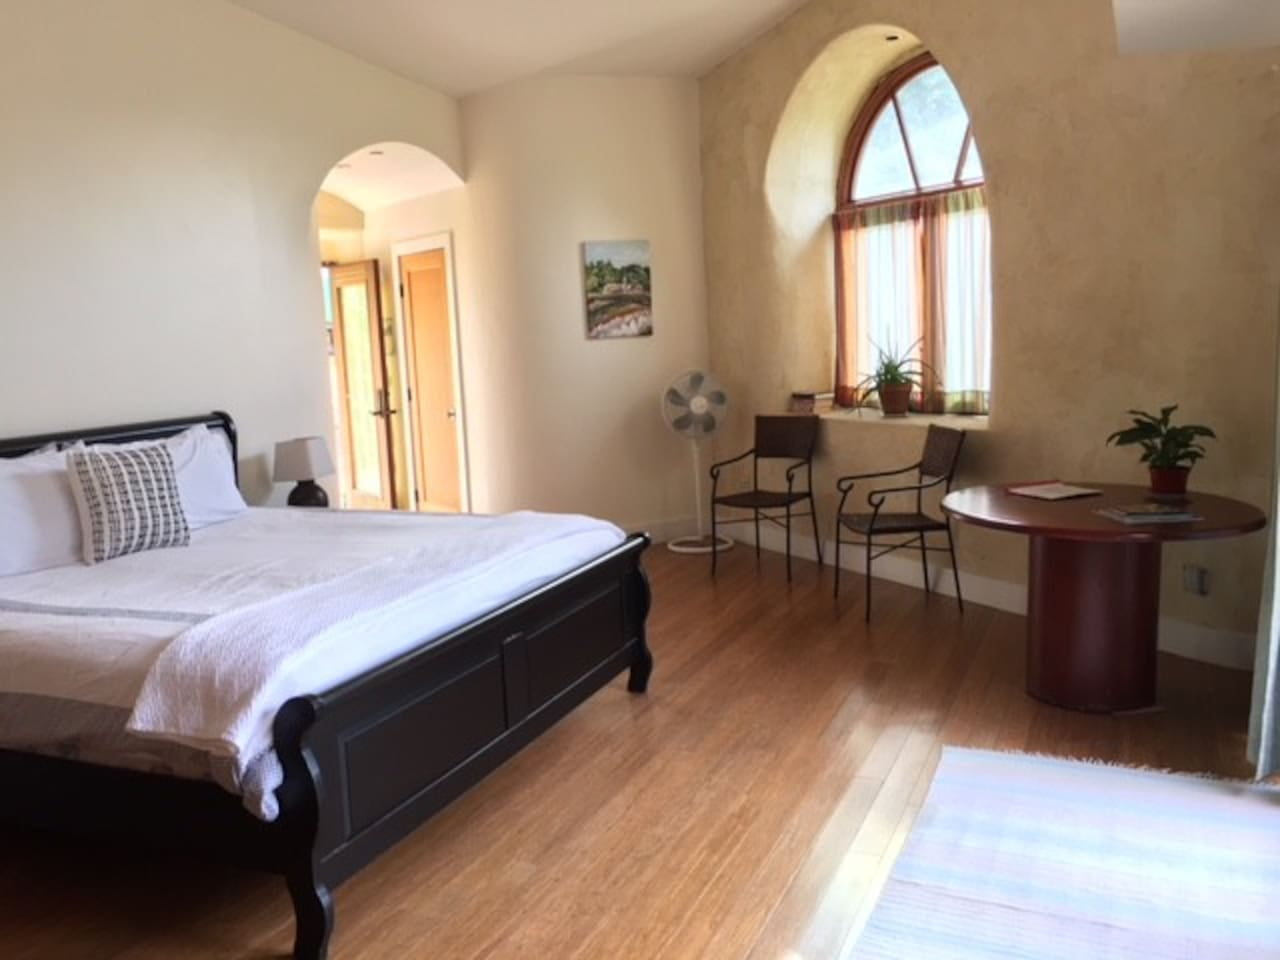 Spacious room with King Bed. Quiet, comfortable and serene.